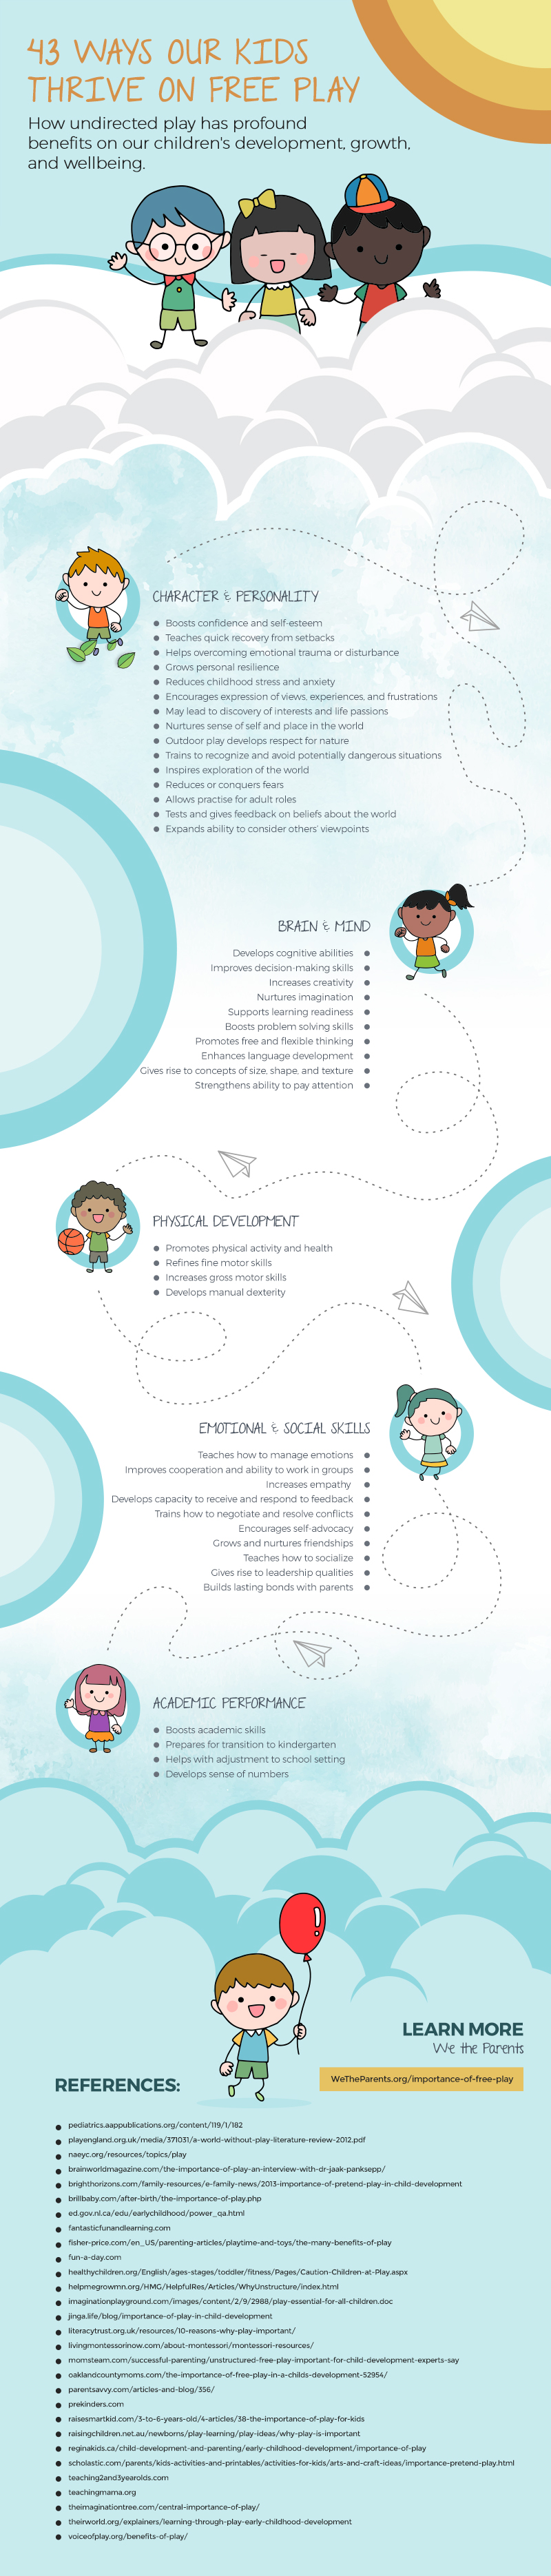 Benefits of free play for children